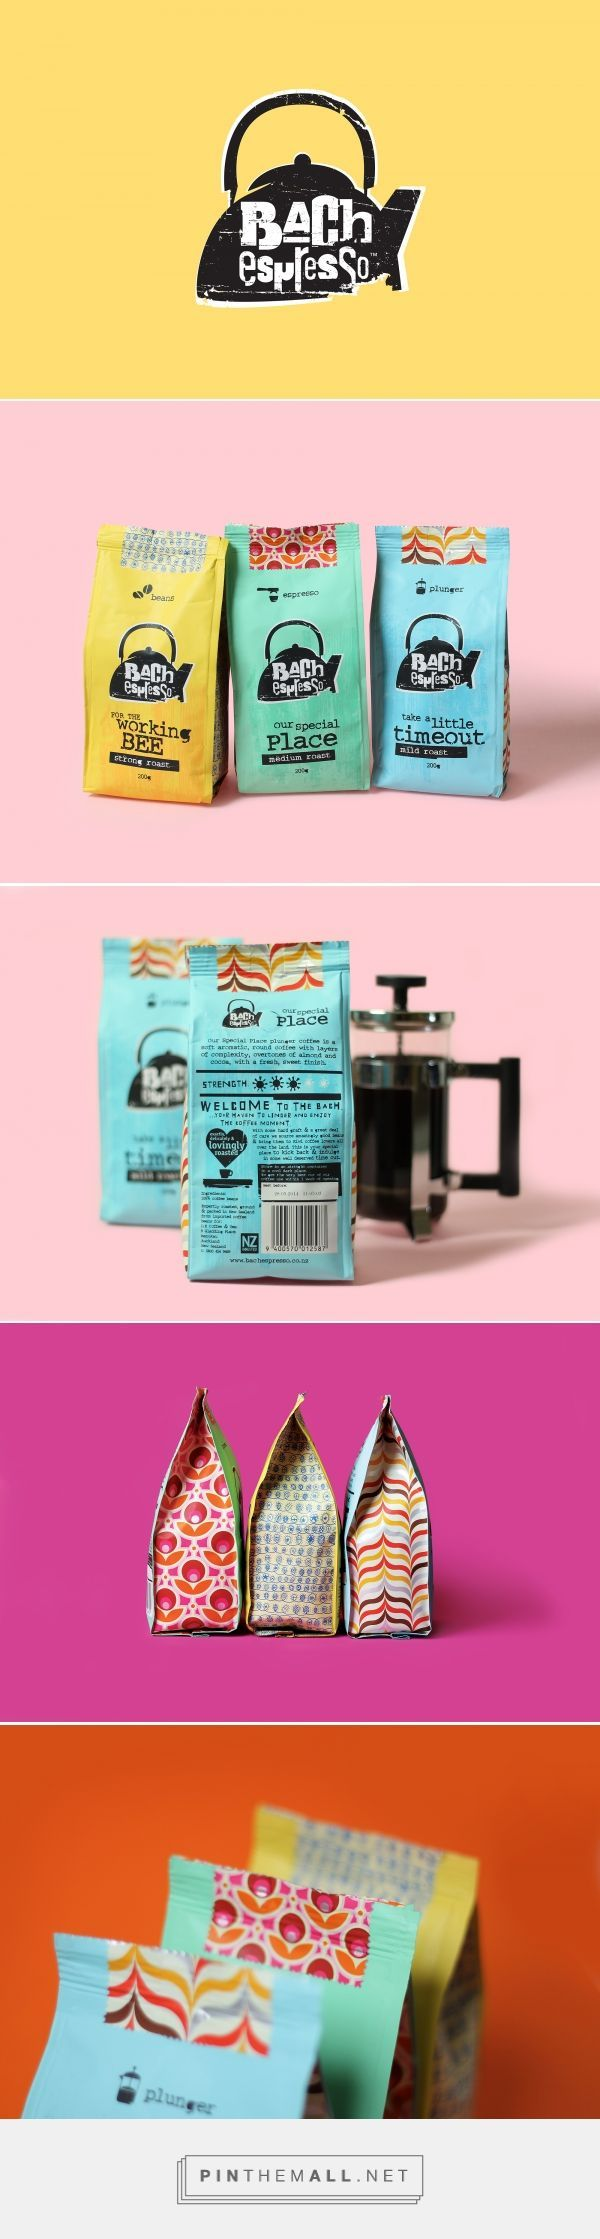 9 best constructivist design images on pinterest constructivism bach espresso retail coffee i really like the pattern on the side